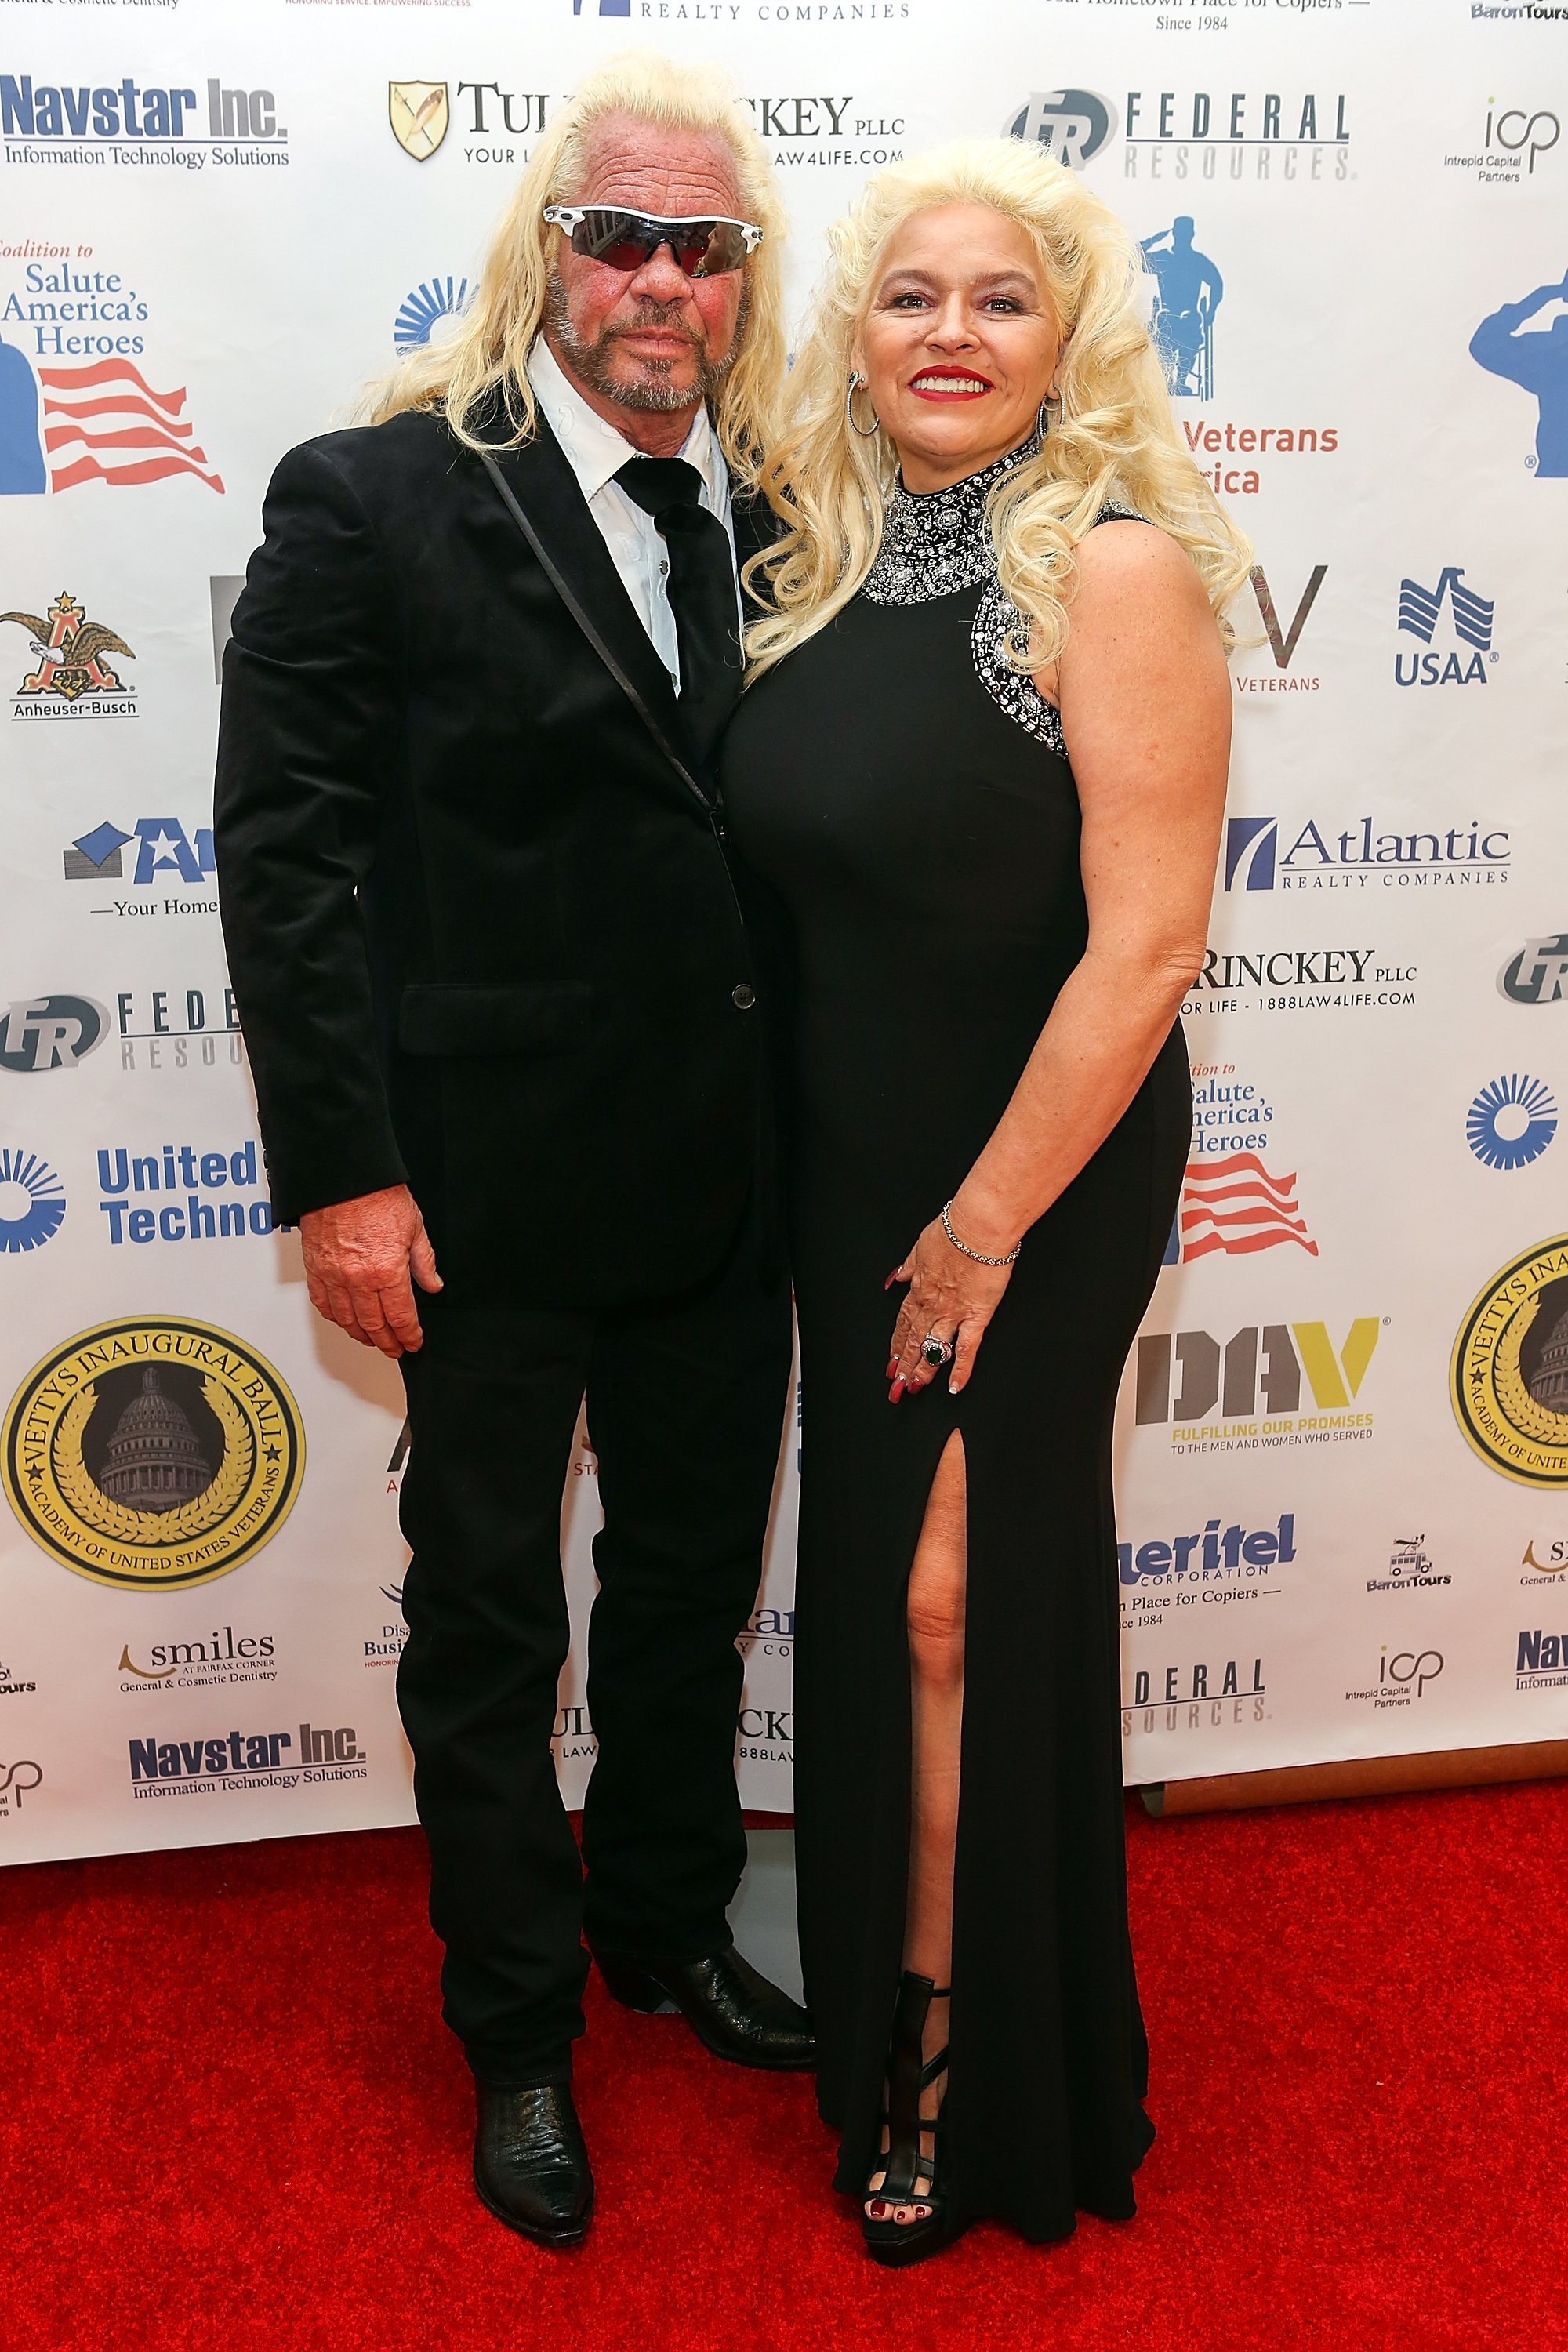 Duane Chapman and his late wife Beth Chapman attend the Vettys Presidential Inaugural Ball in Washington, D.C. on January 20, 2017 | Photo: Getty Images